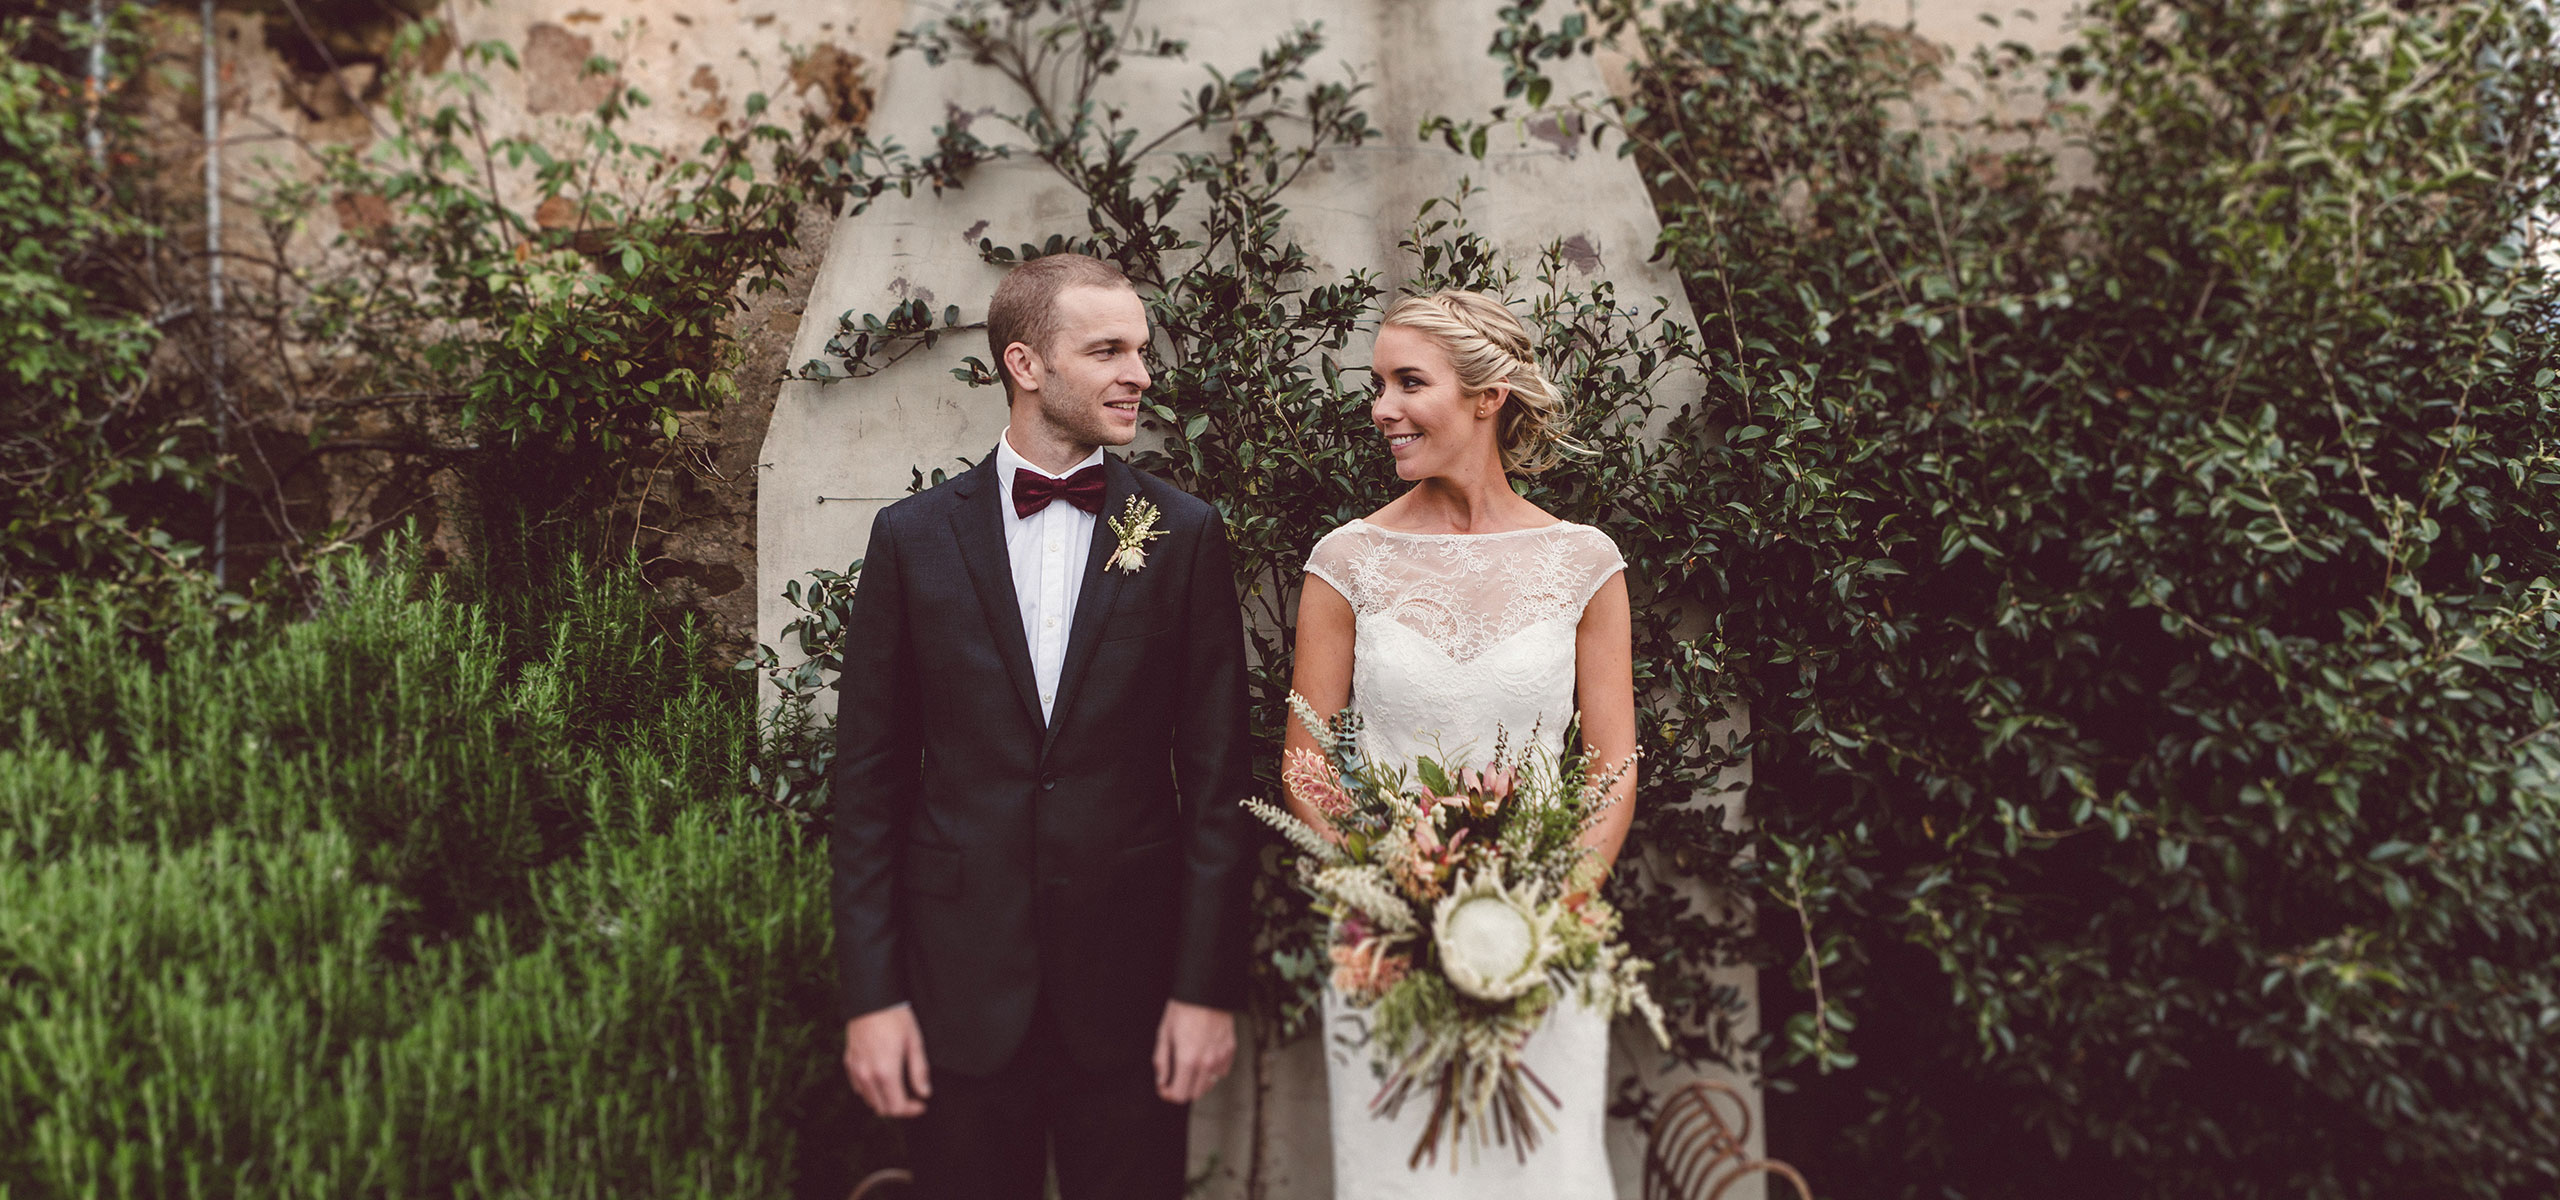 Berry NSW | Red Berry Photography Our Services